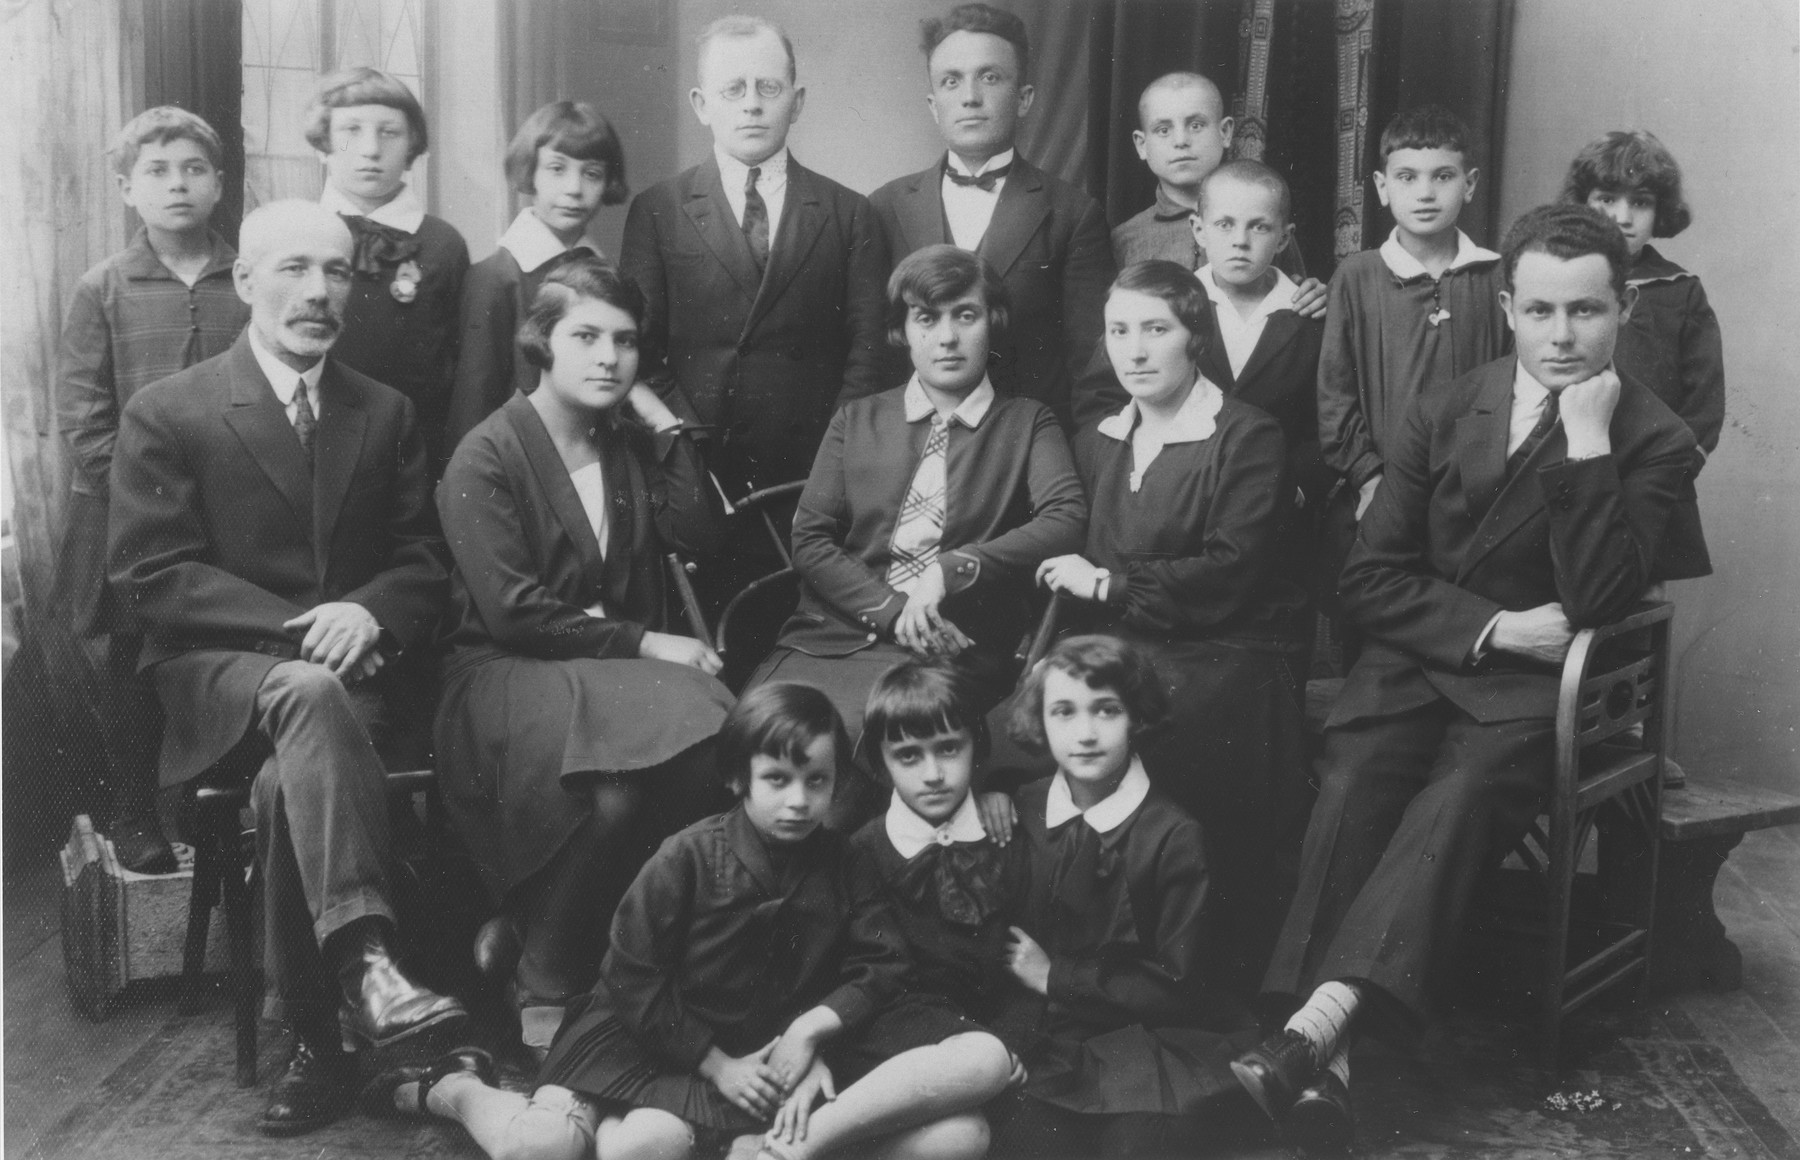 Students and teachers at the Tarbut school in Nowogrodek.  Seated at the right is the principal, Moishe Sternberg.